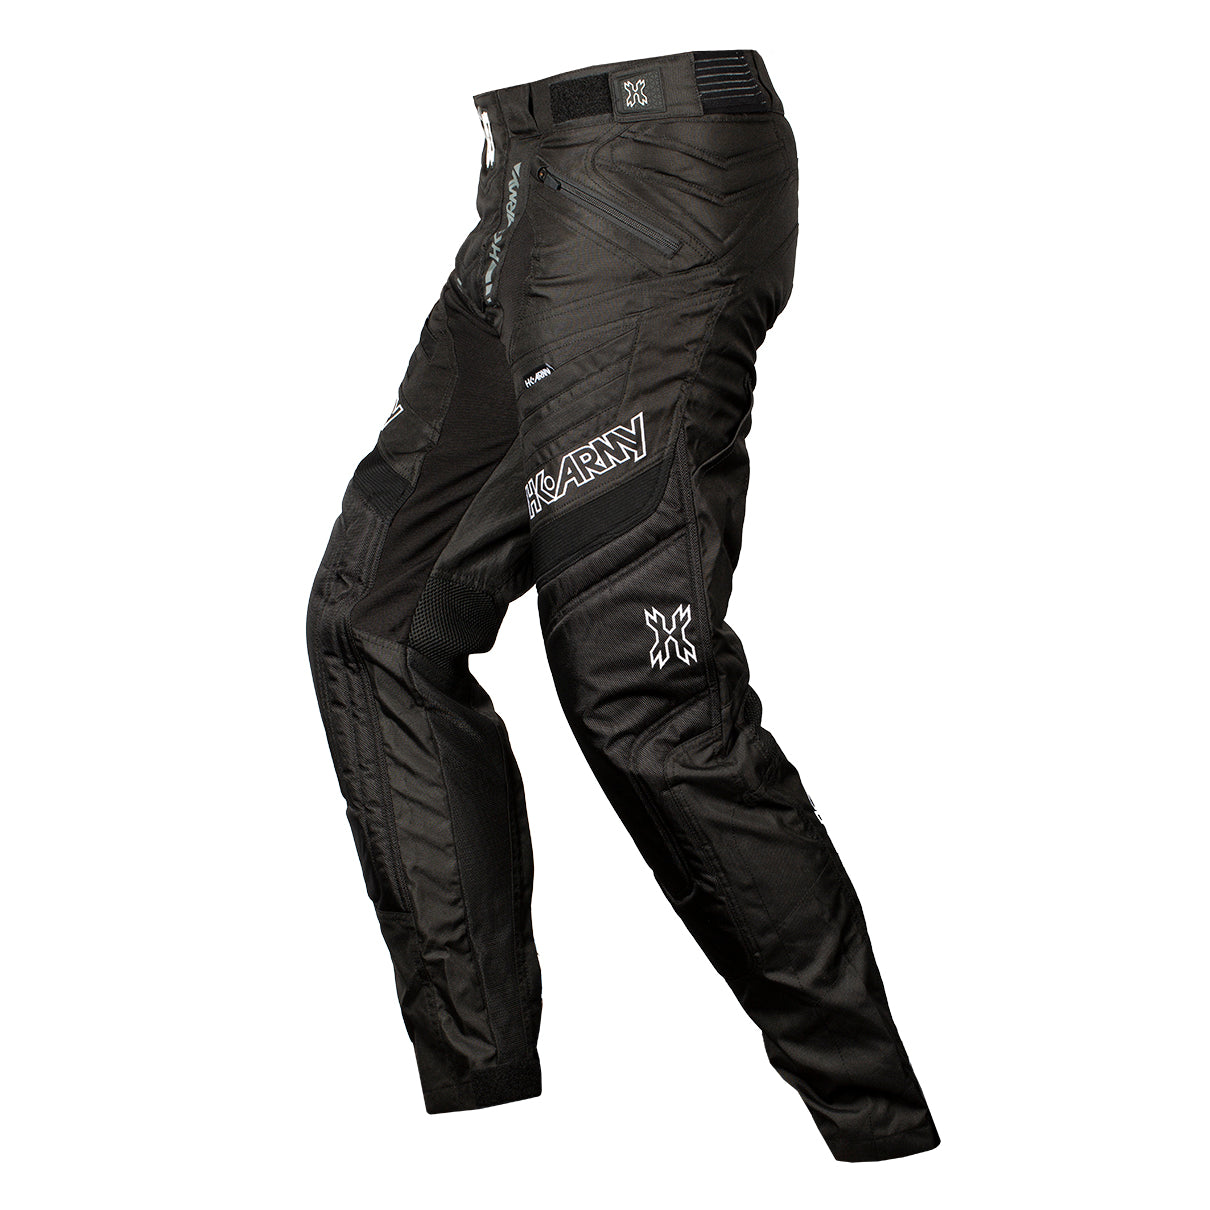 Stealth Details about  /HK Army Hardline Propant Paintball Pants 30-33 Medium